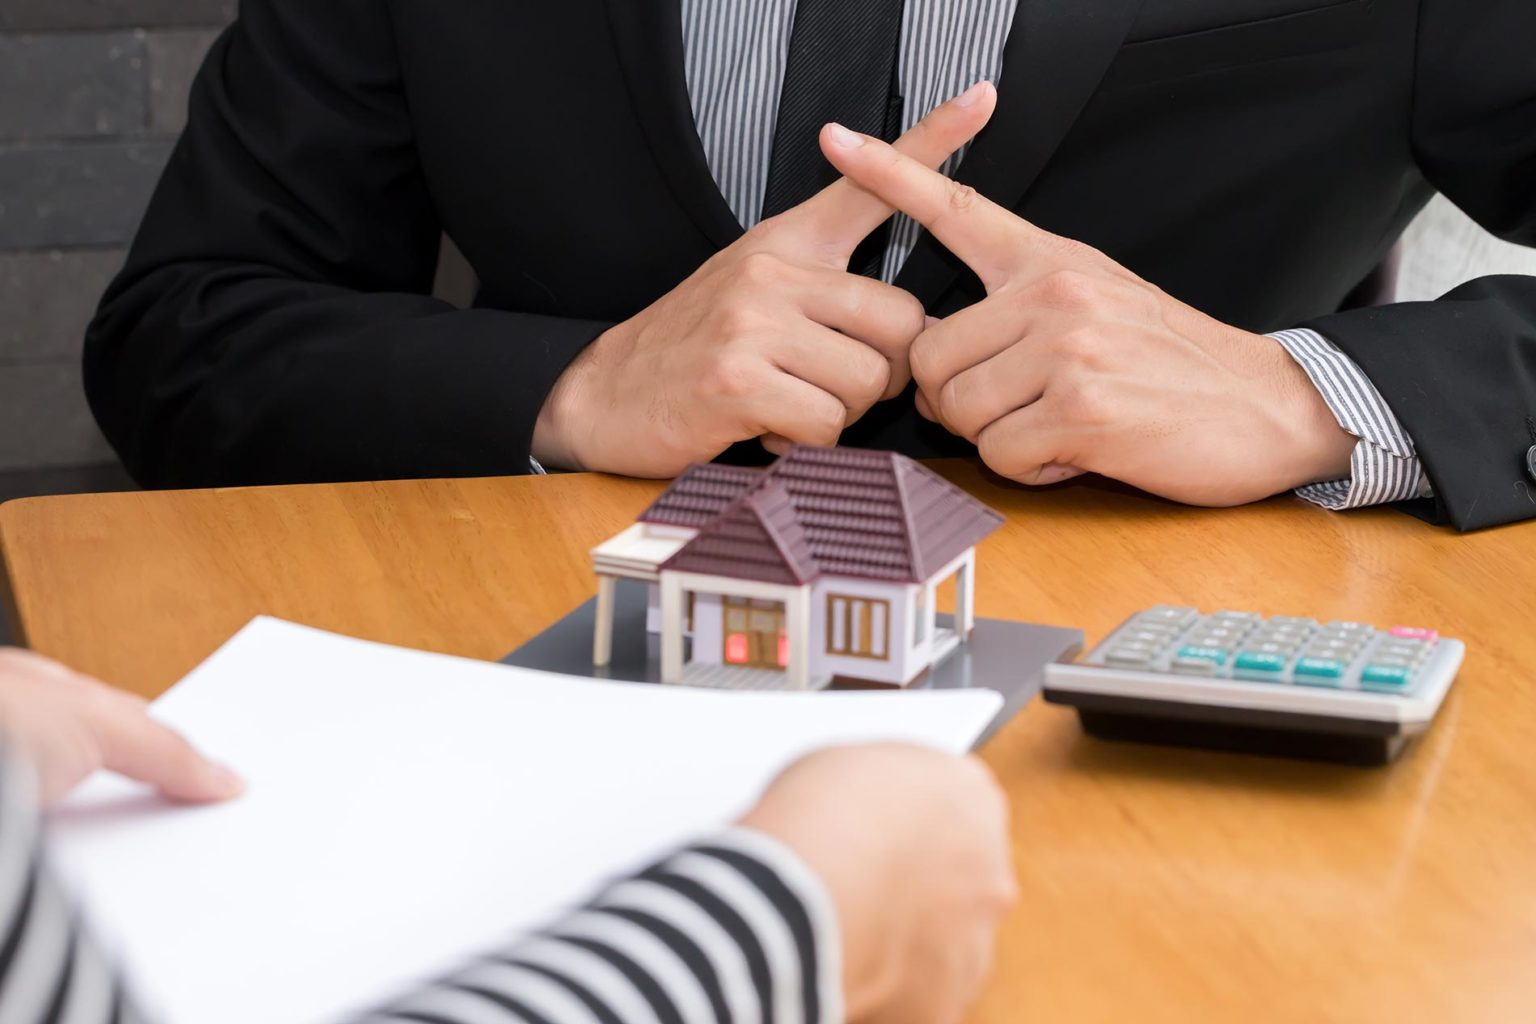 Banks refuse loans to buy a house